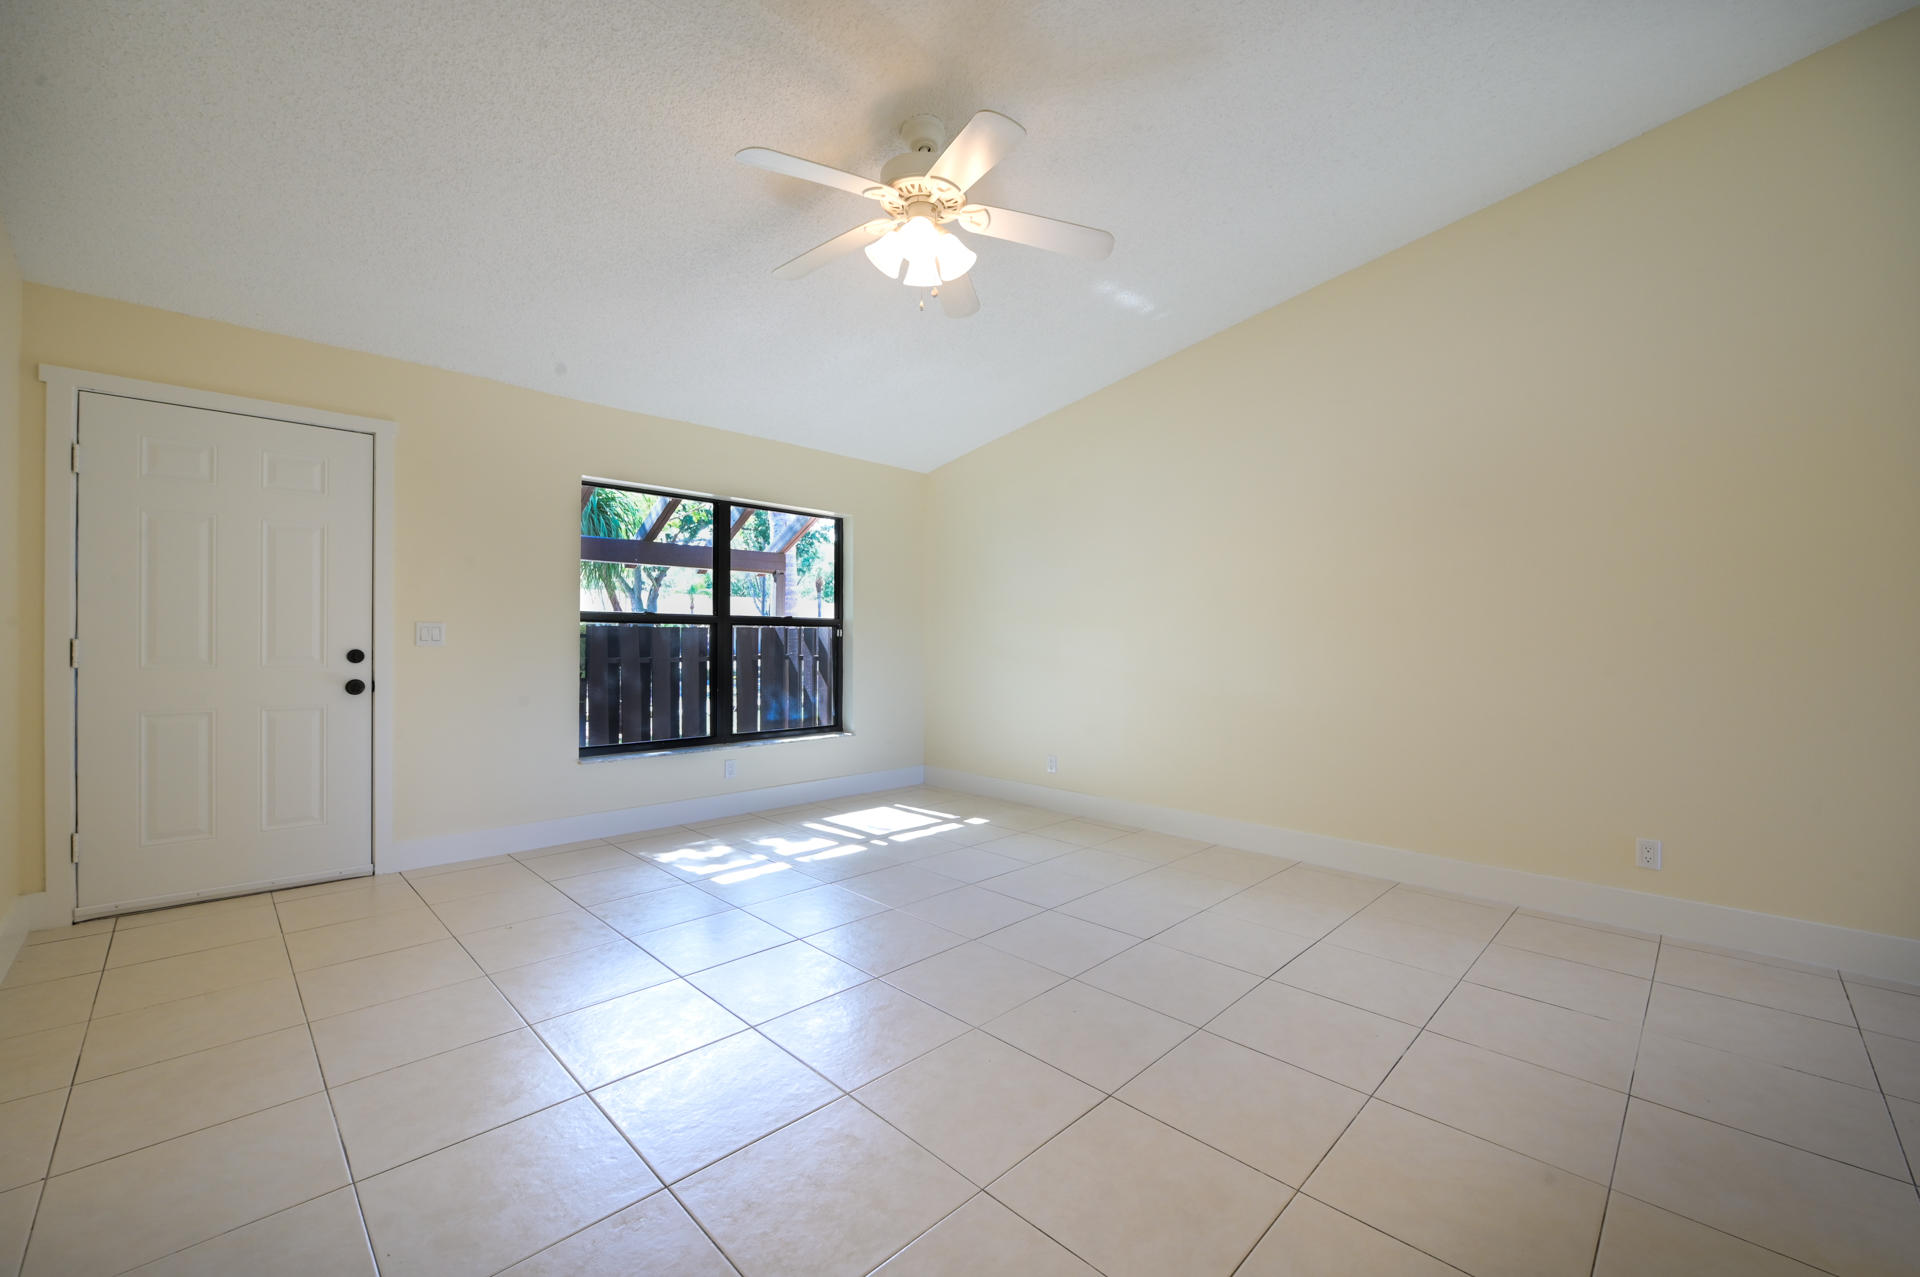 71 Via De Casas Norte Boynton Beach, FL 33426 photo 5